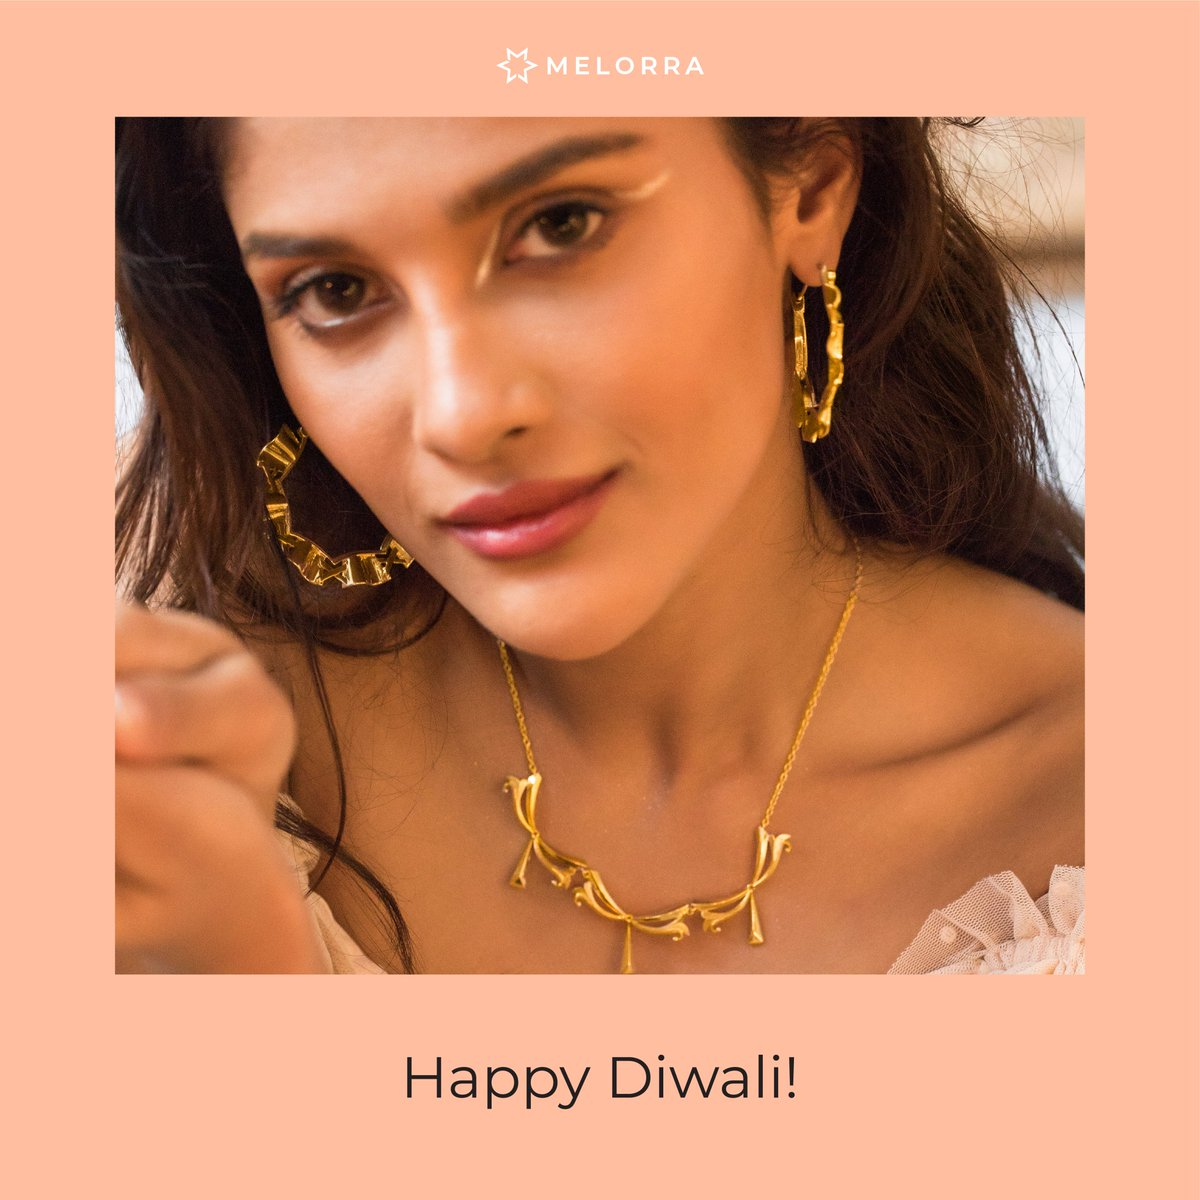 This Diwali, bring home some glam and gold! Wishing you all a very Happy Diwali!  #Melorra #Diwali2020 #FineJewellery #GoldJewellery #LightweightJewellery #EverydayJewellery